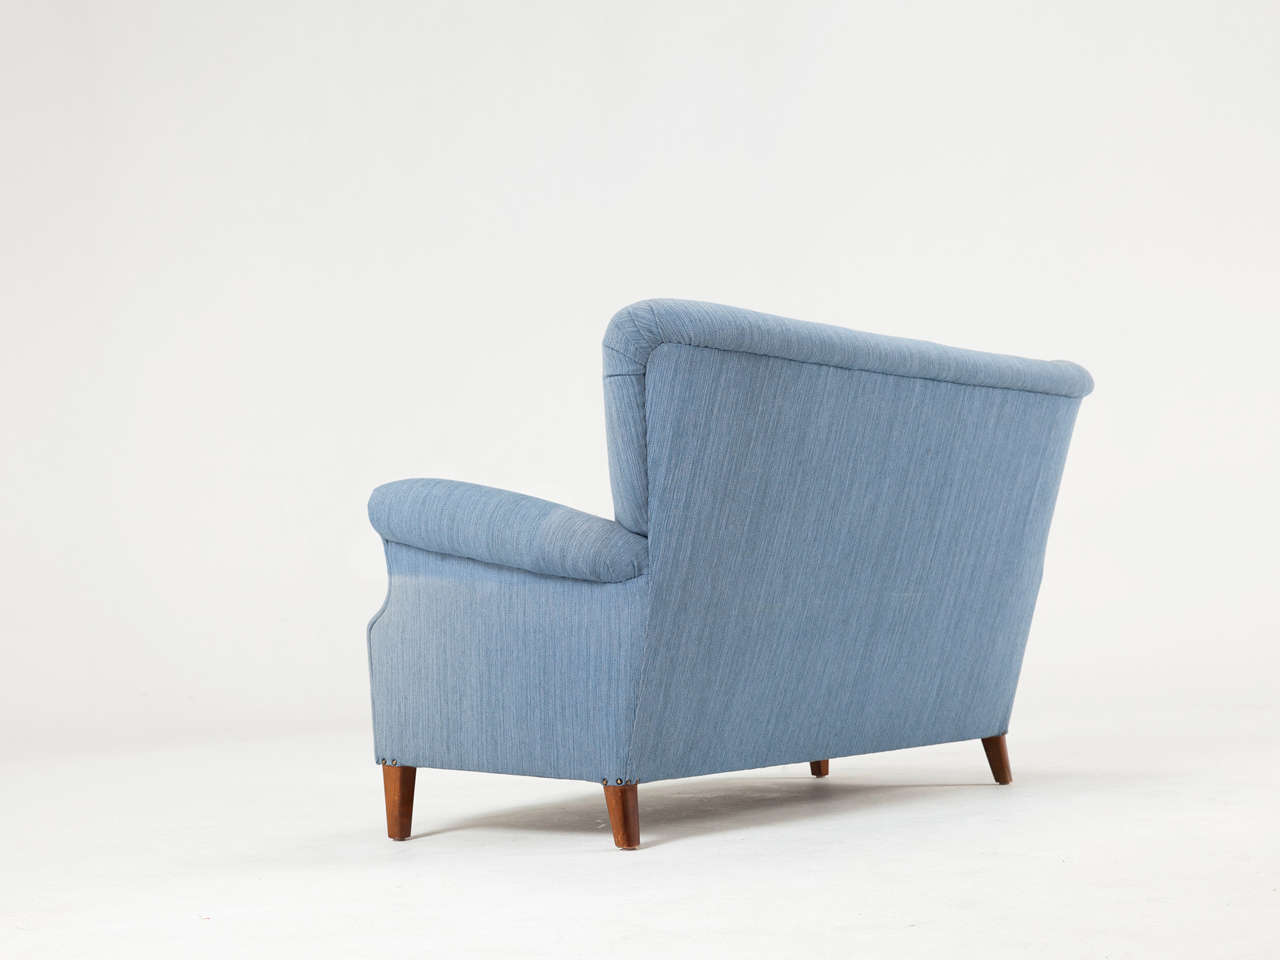 Mid-20th Century Swedish Blue Two-Seat Sofa, 1950s For Sale